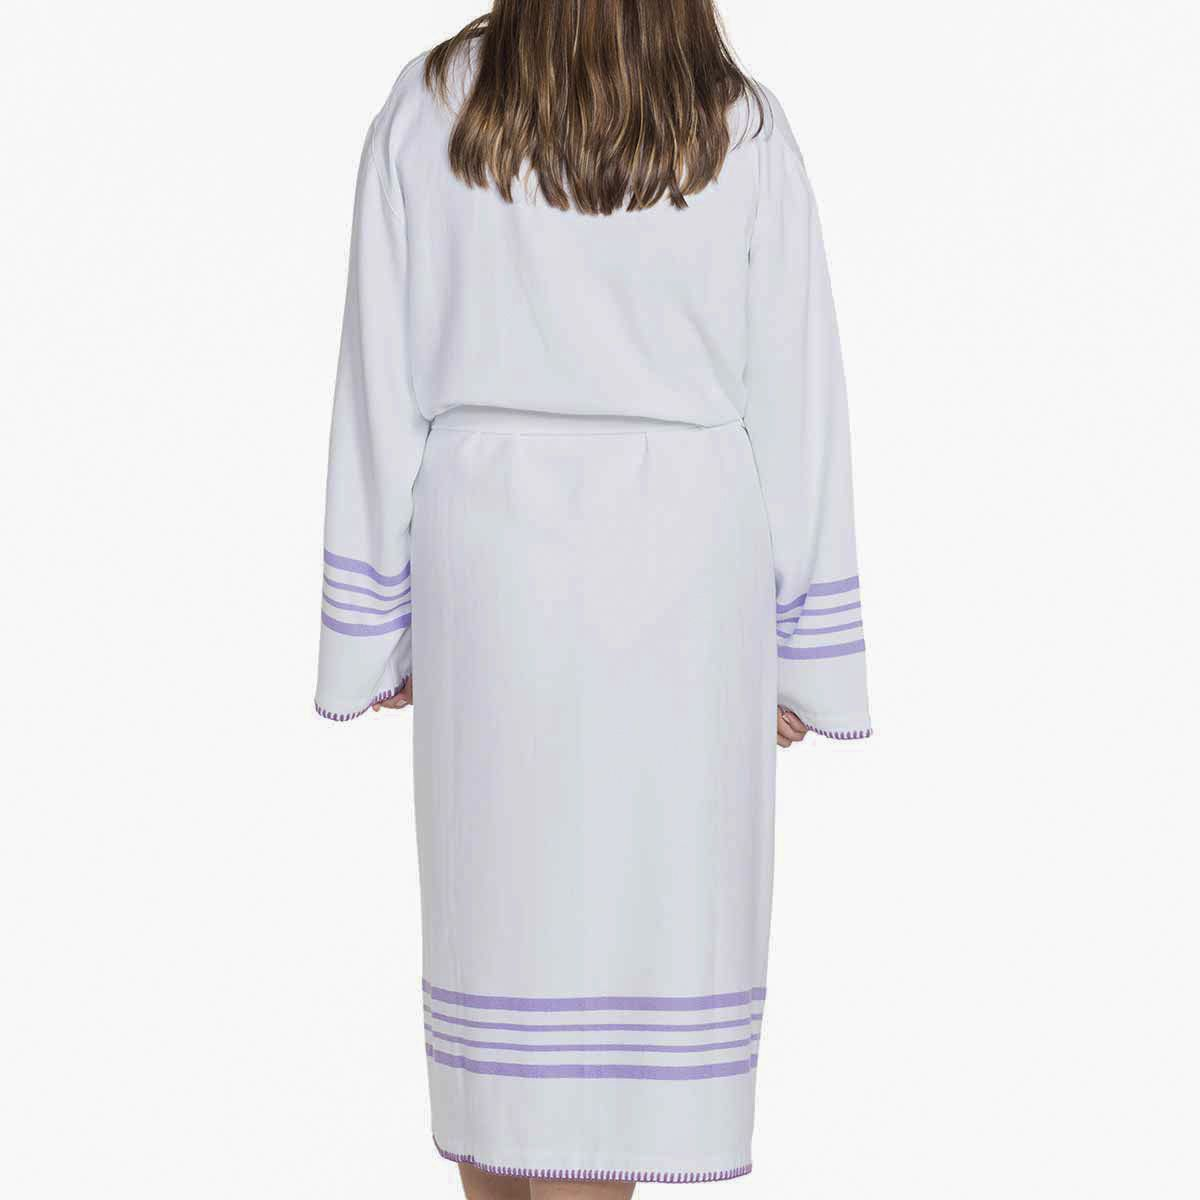 Bathrobe White Sultan - Dark Lilac Stripes